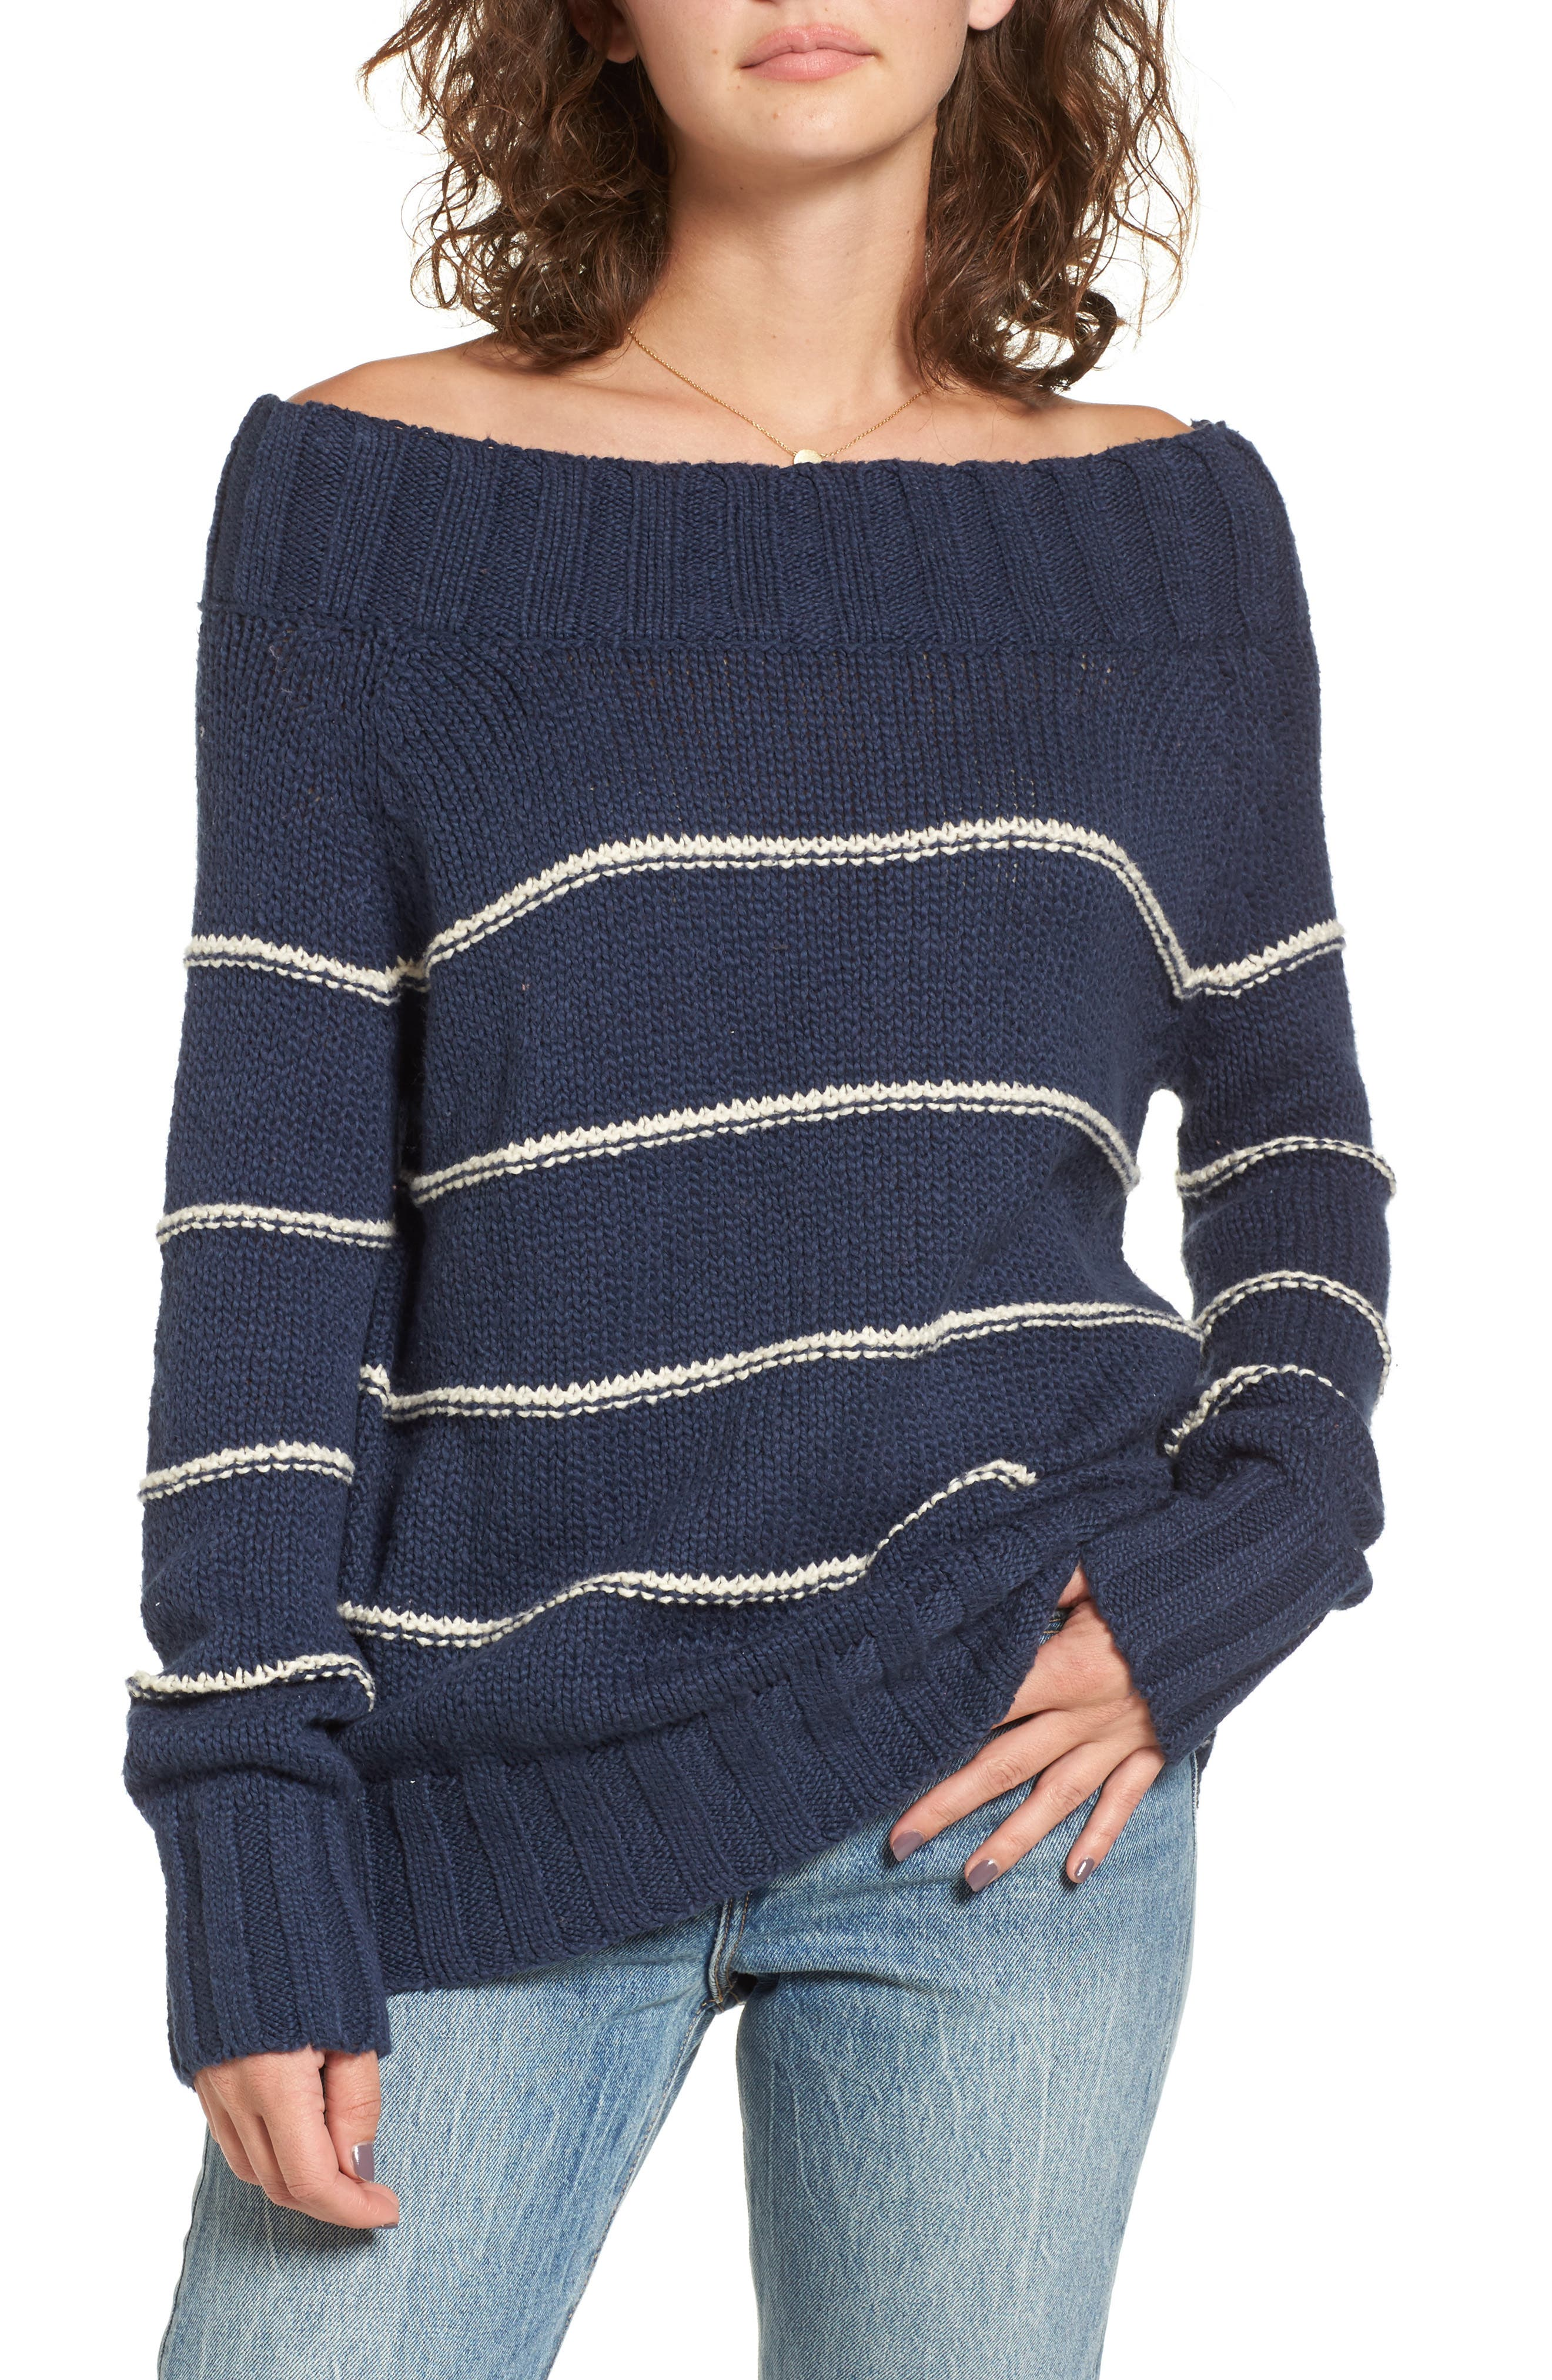 BILLABONG Snuggle Down Off the Shoulder Sweater, Main, color, 400